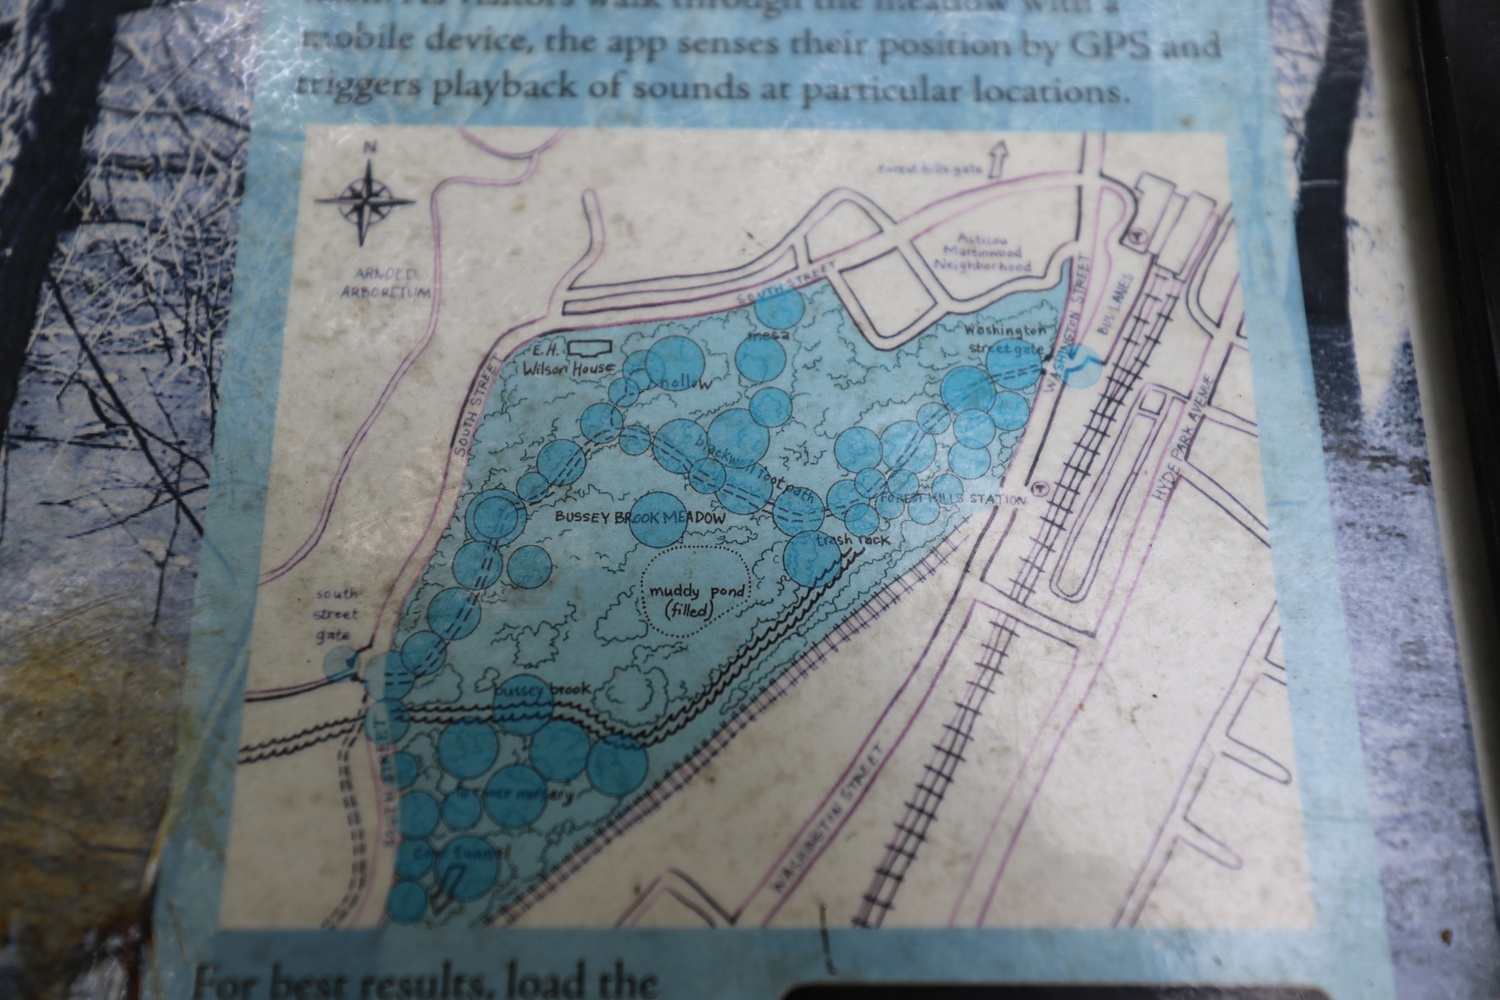 A map of the Arboretum located on the Blackwell Footpath references the now filled-in Muddy Pond.